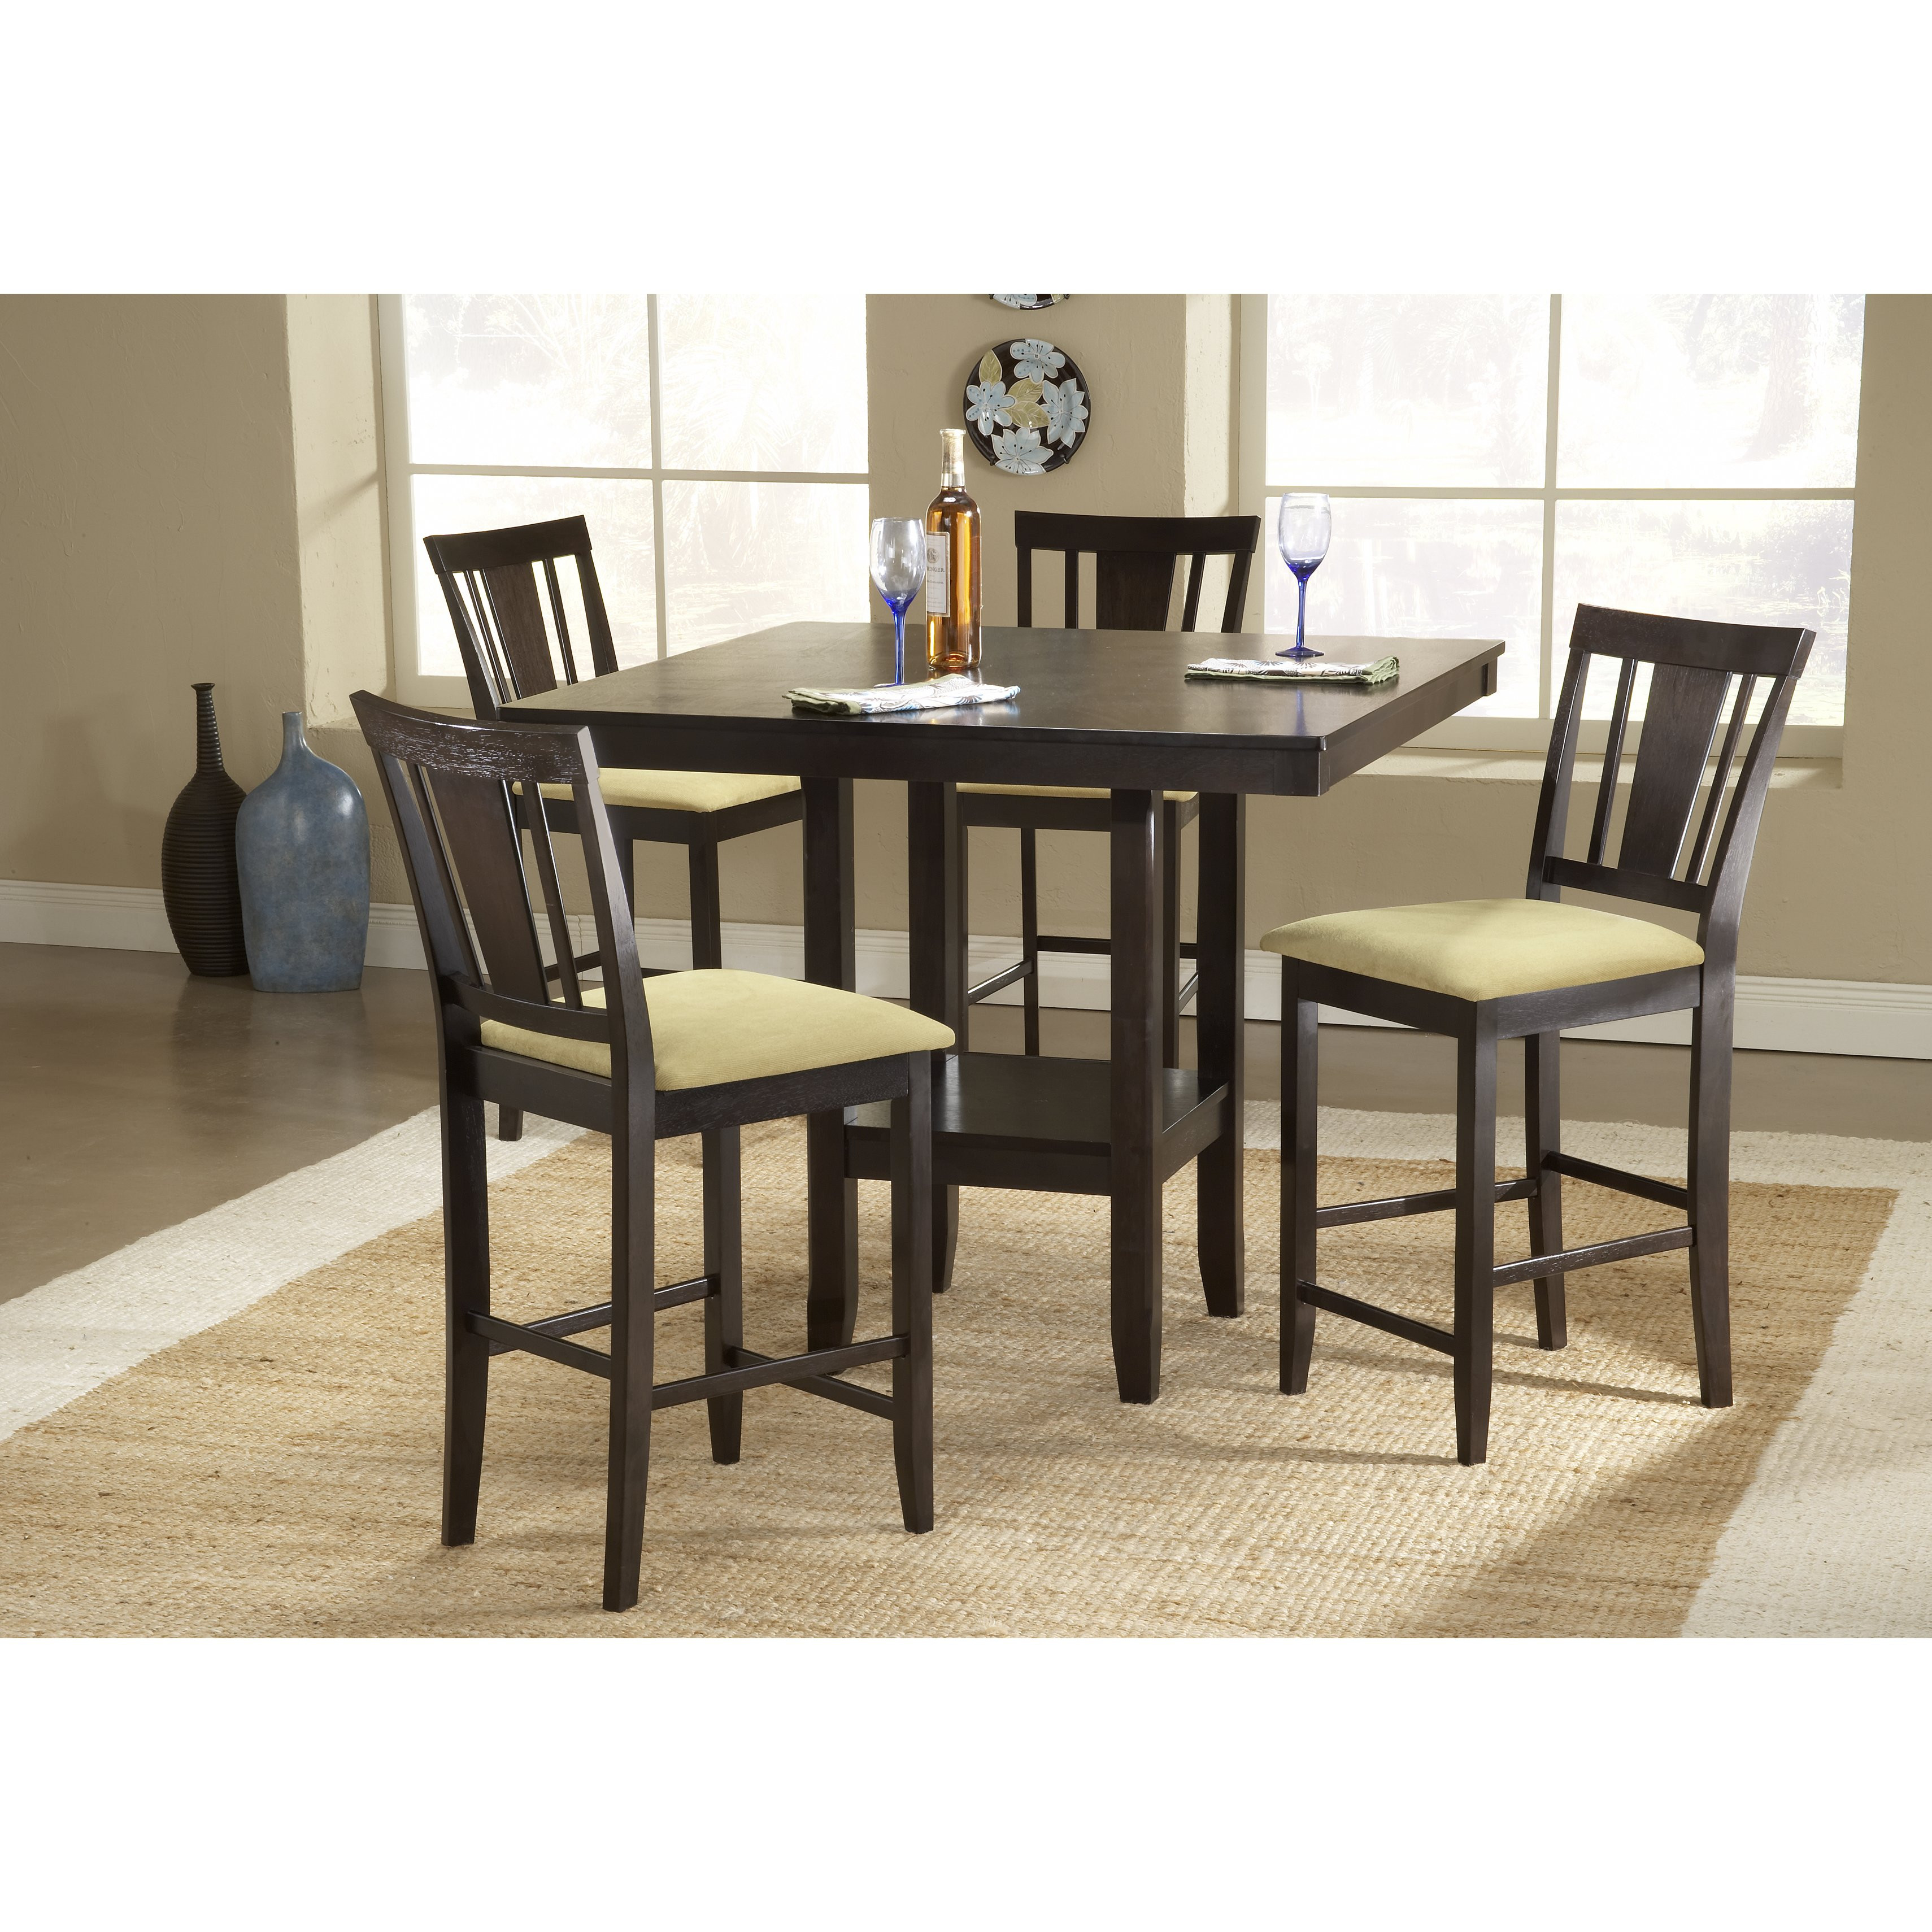 Best ideas about Dining Table Height . Save or Pin Hillsdale Arcadia Counter Height Dining Table & Reviews Now.